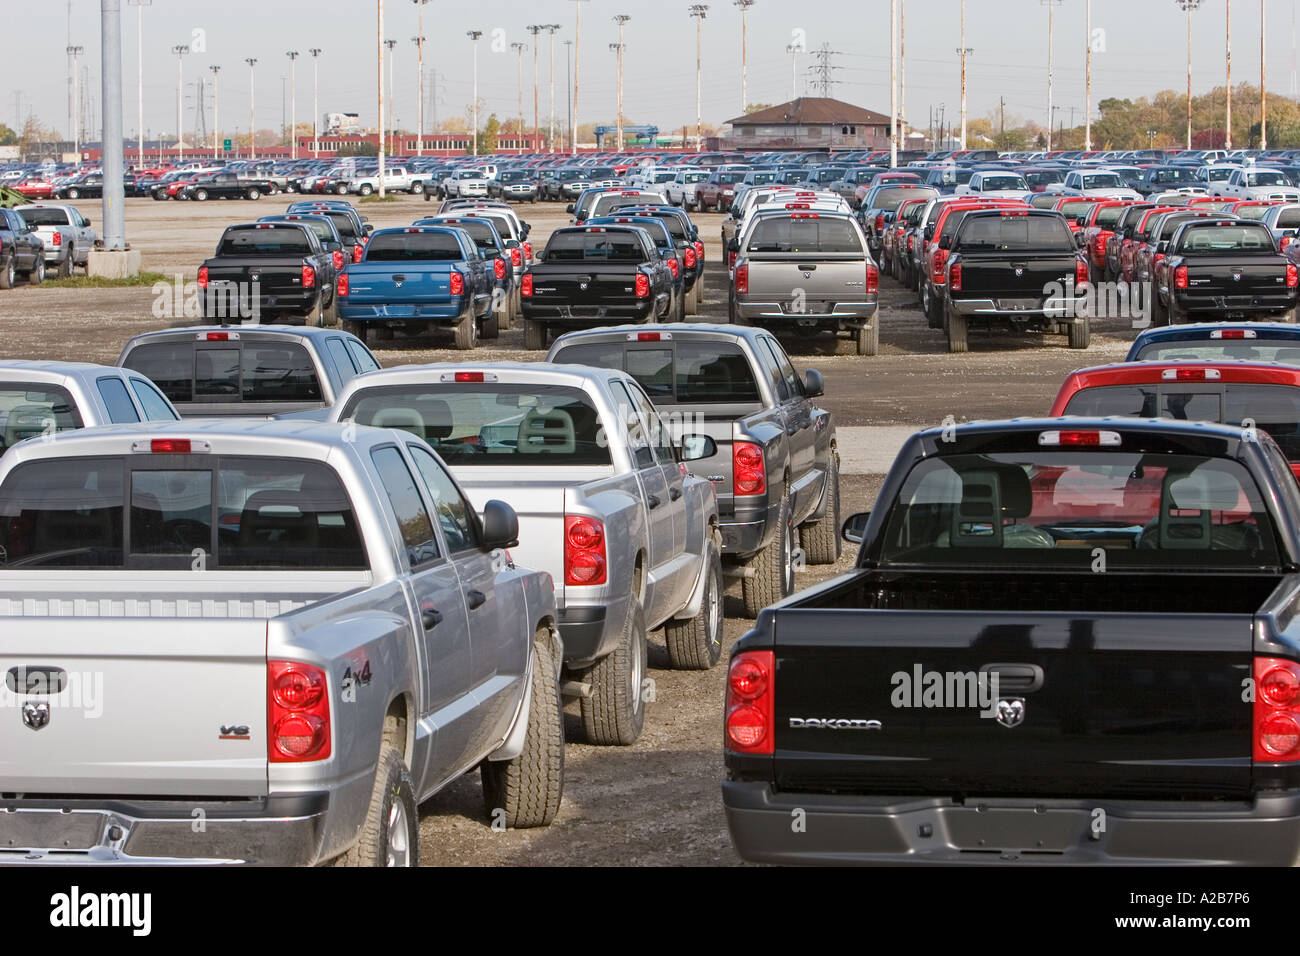 Unsold Cars and Trucks Stock Photo, Royalty Free Image: 5981349 ...